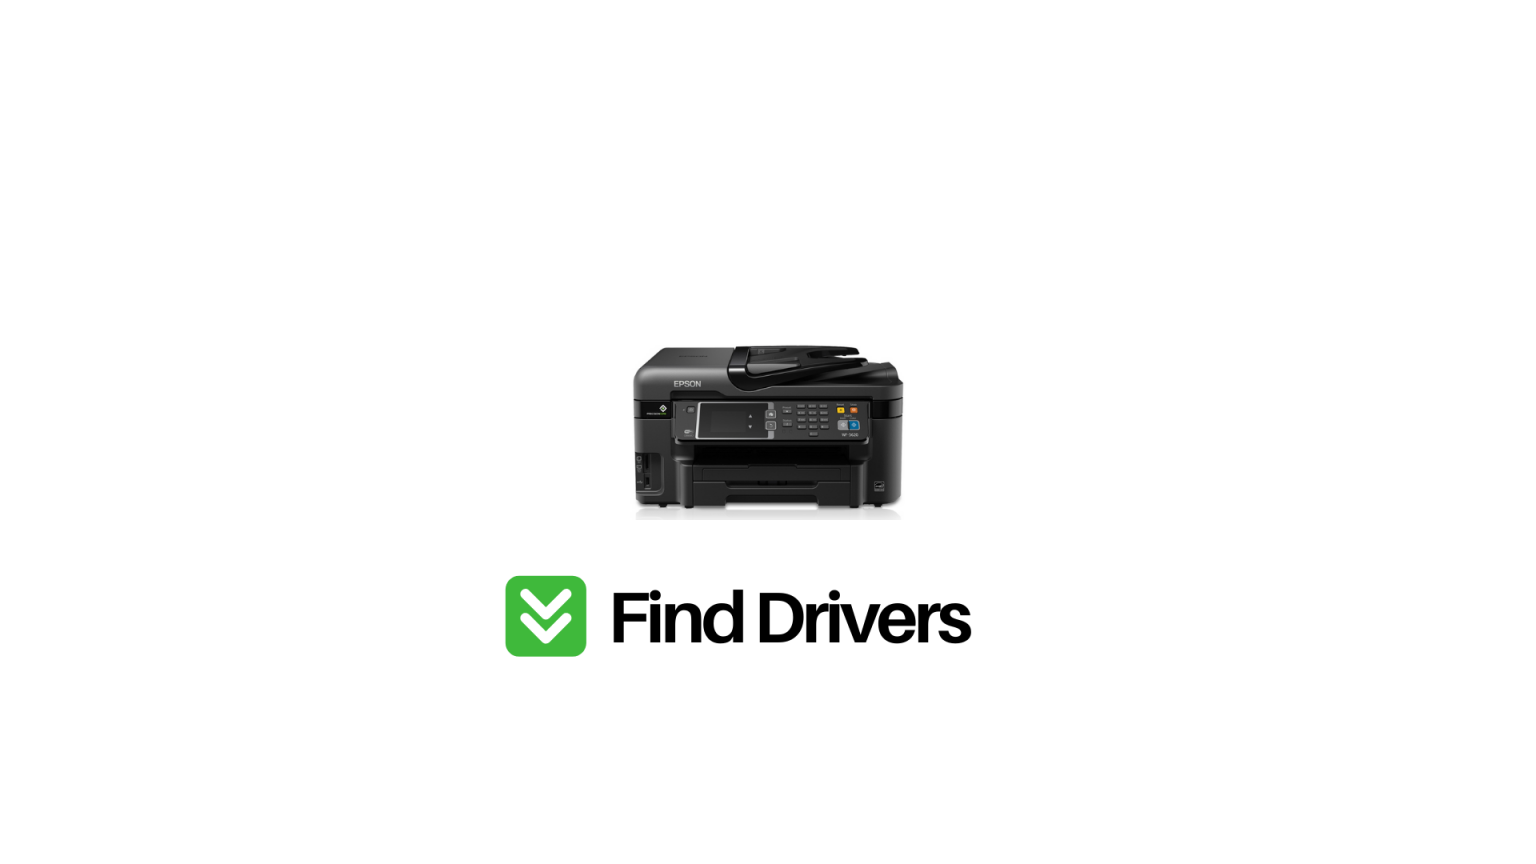 Epson WF-3620 Driver Software Downloads - Find Drivers